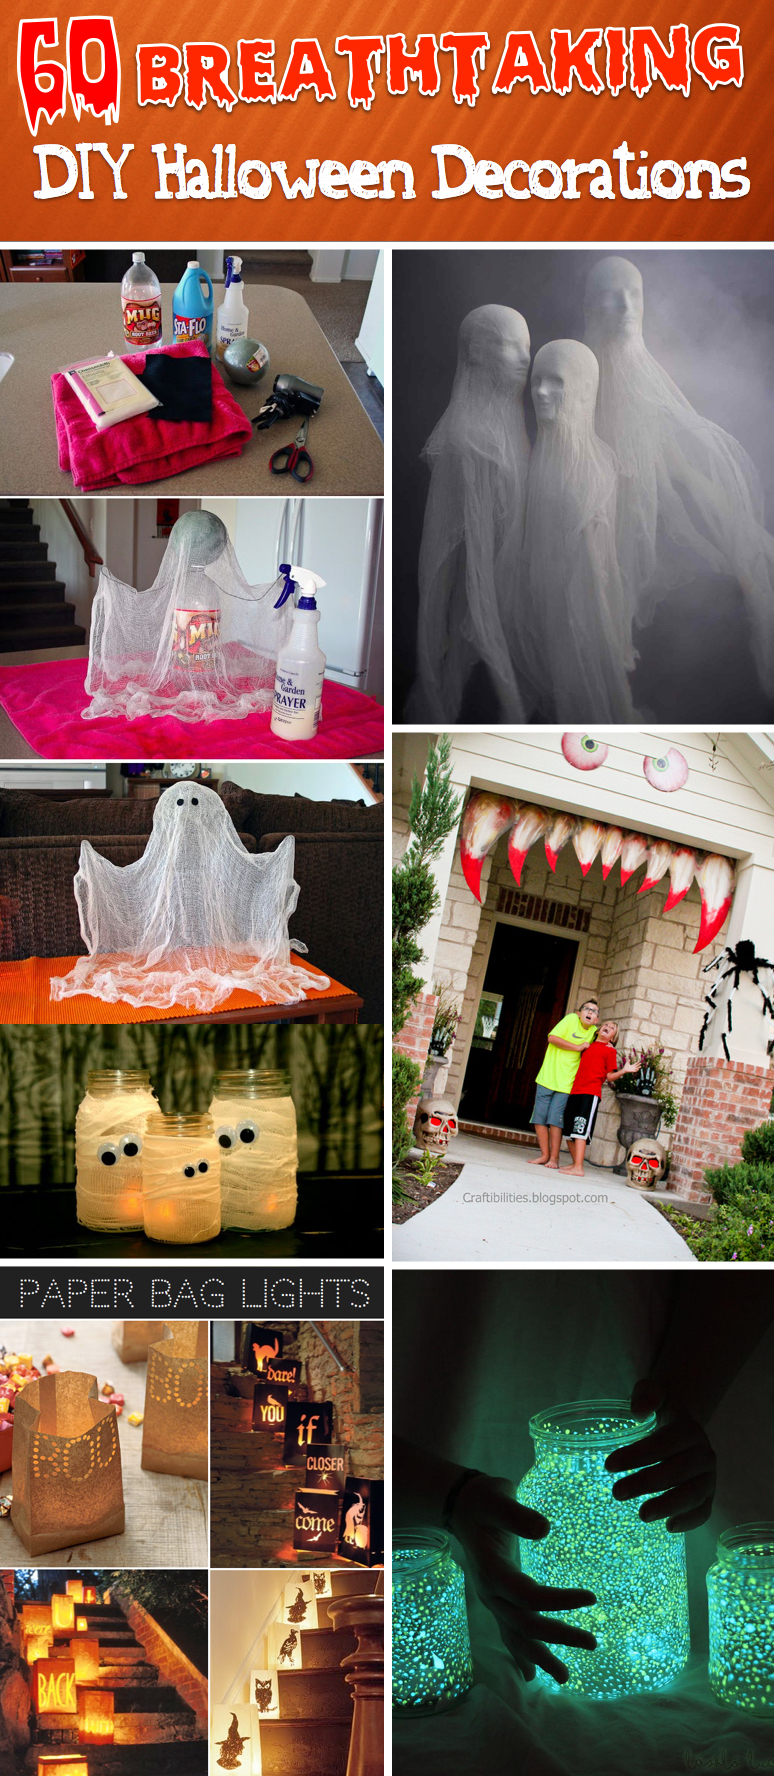 Diy halloween decorations - 60 Breathtaking And Effortless Diy Halloween Decorations